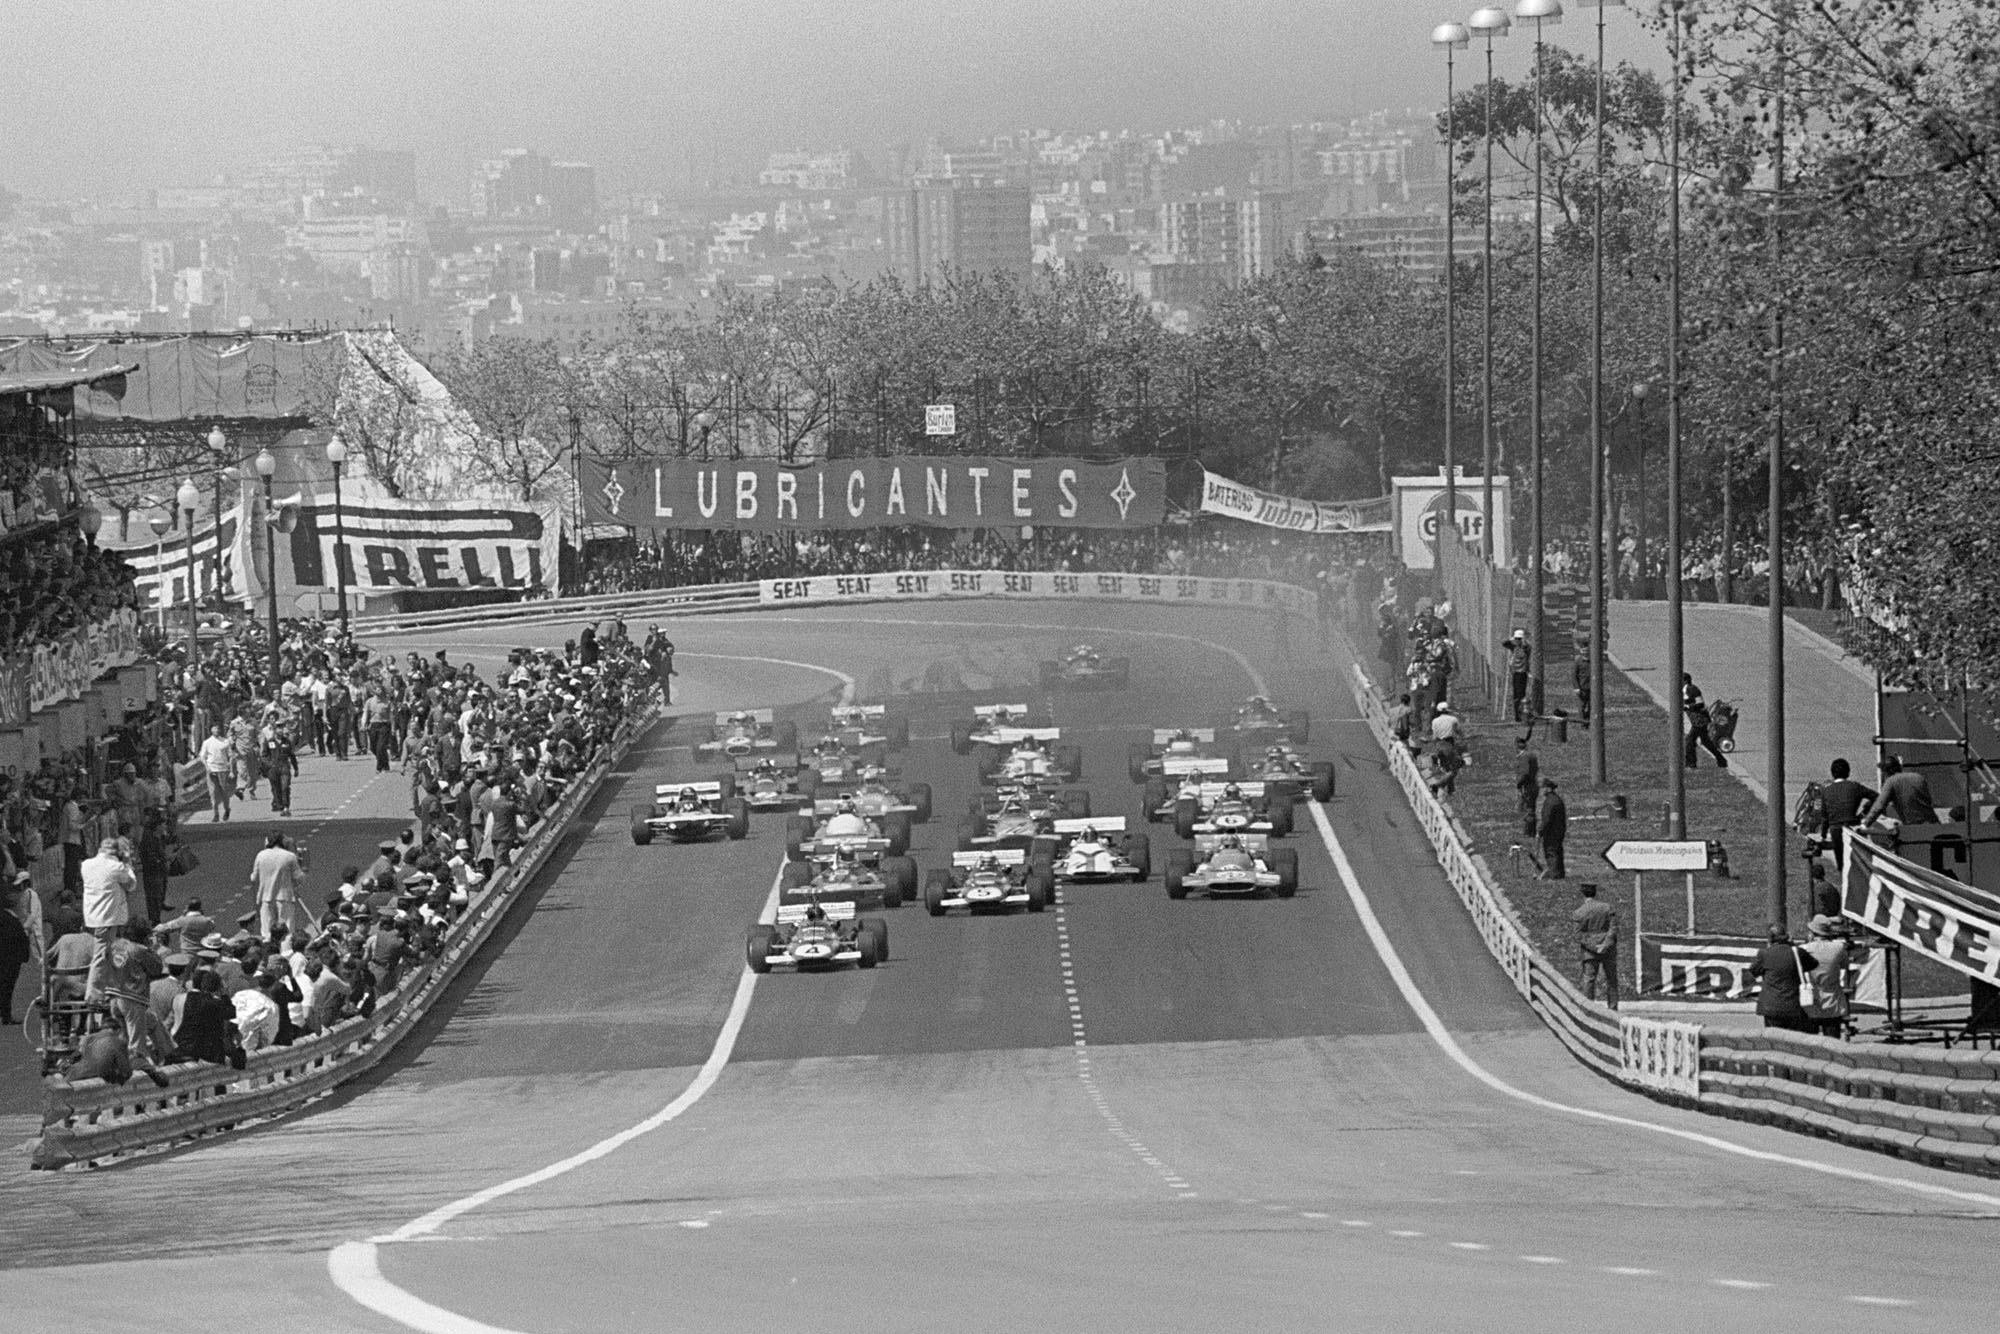 Cars move off the grid as the 1971 Spanish Grand Prix starts